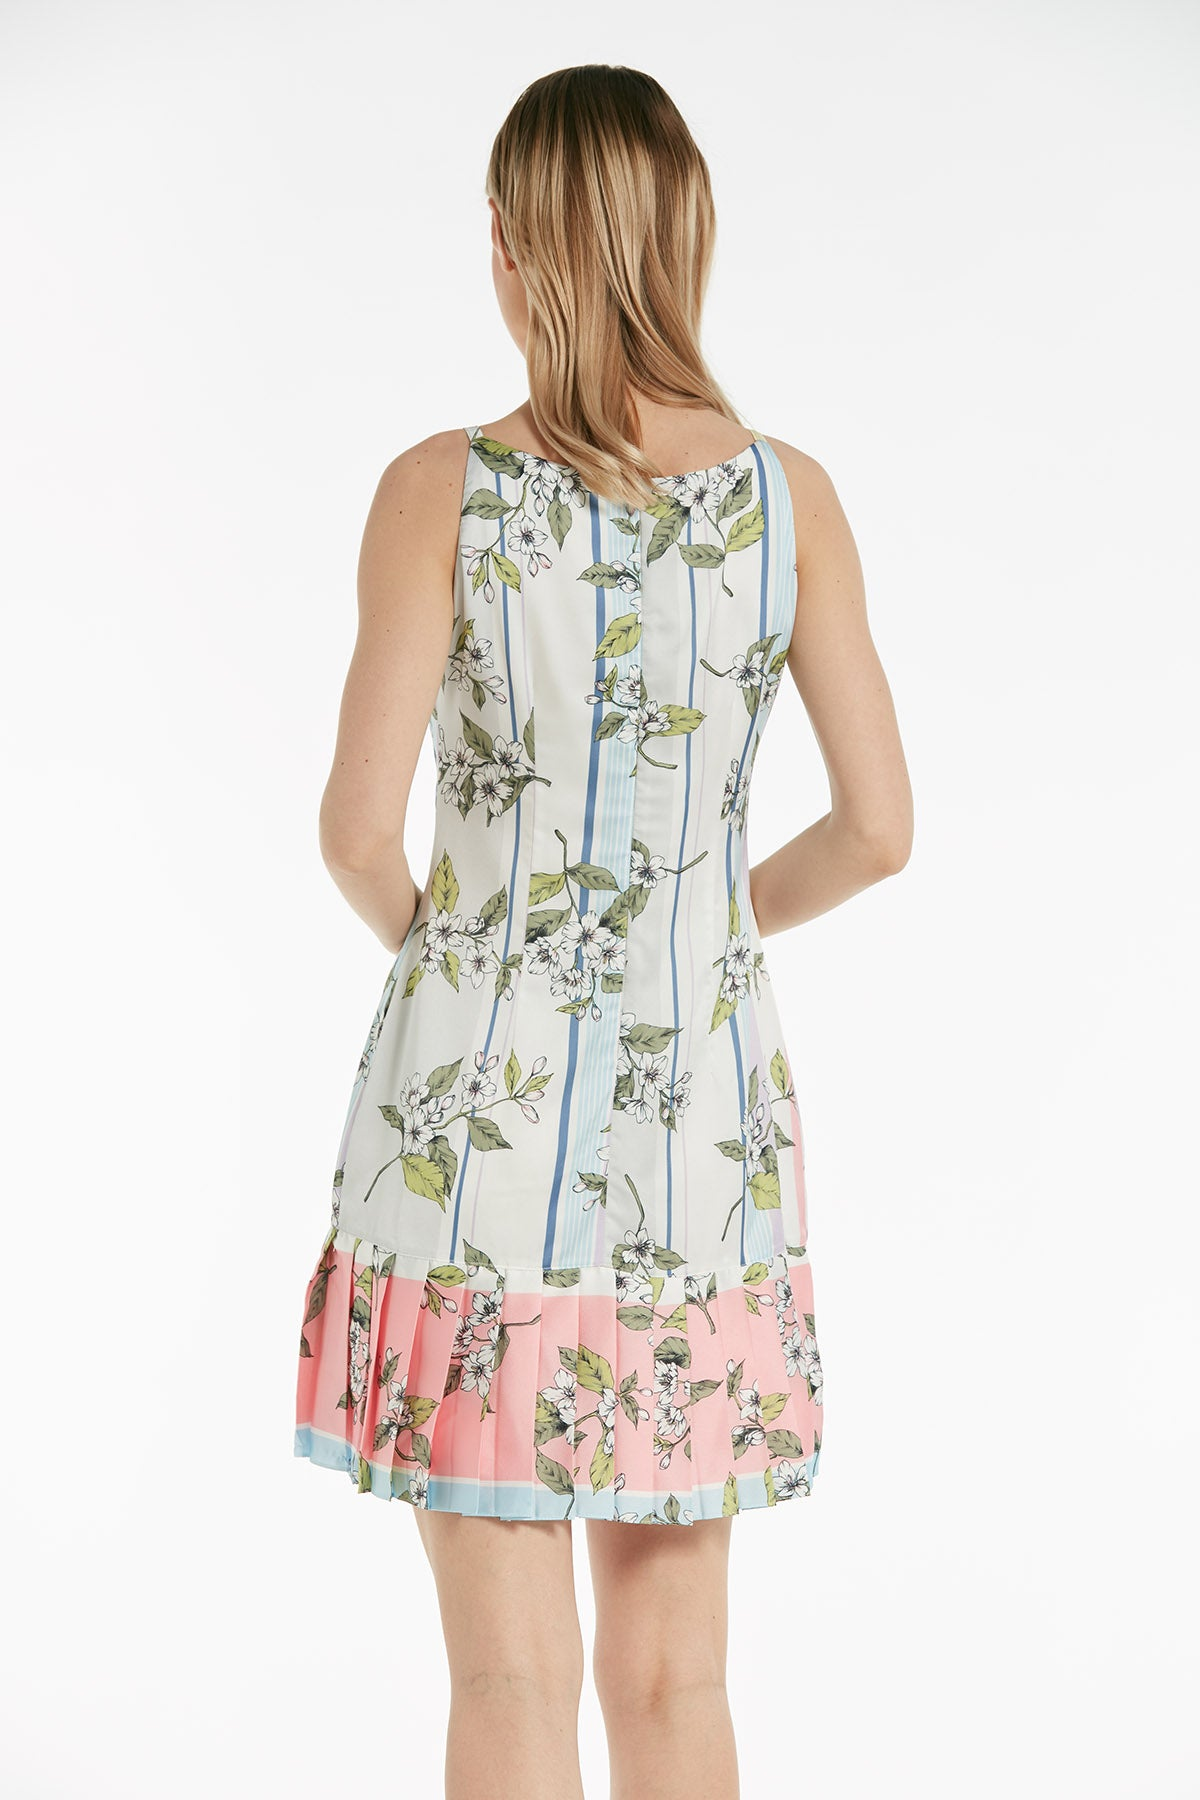 Sleeveless skater printed dress - 53517